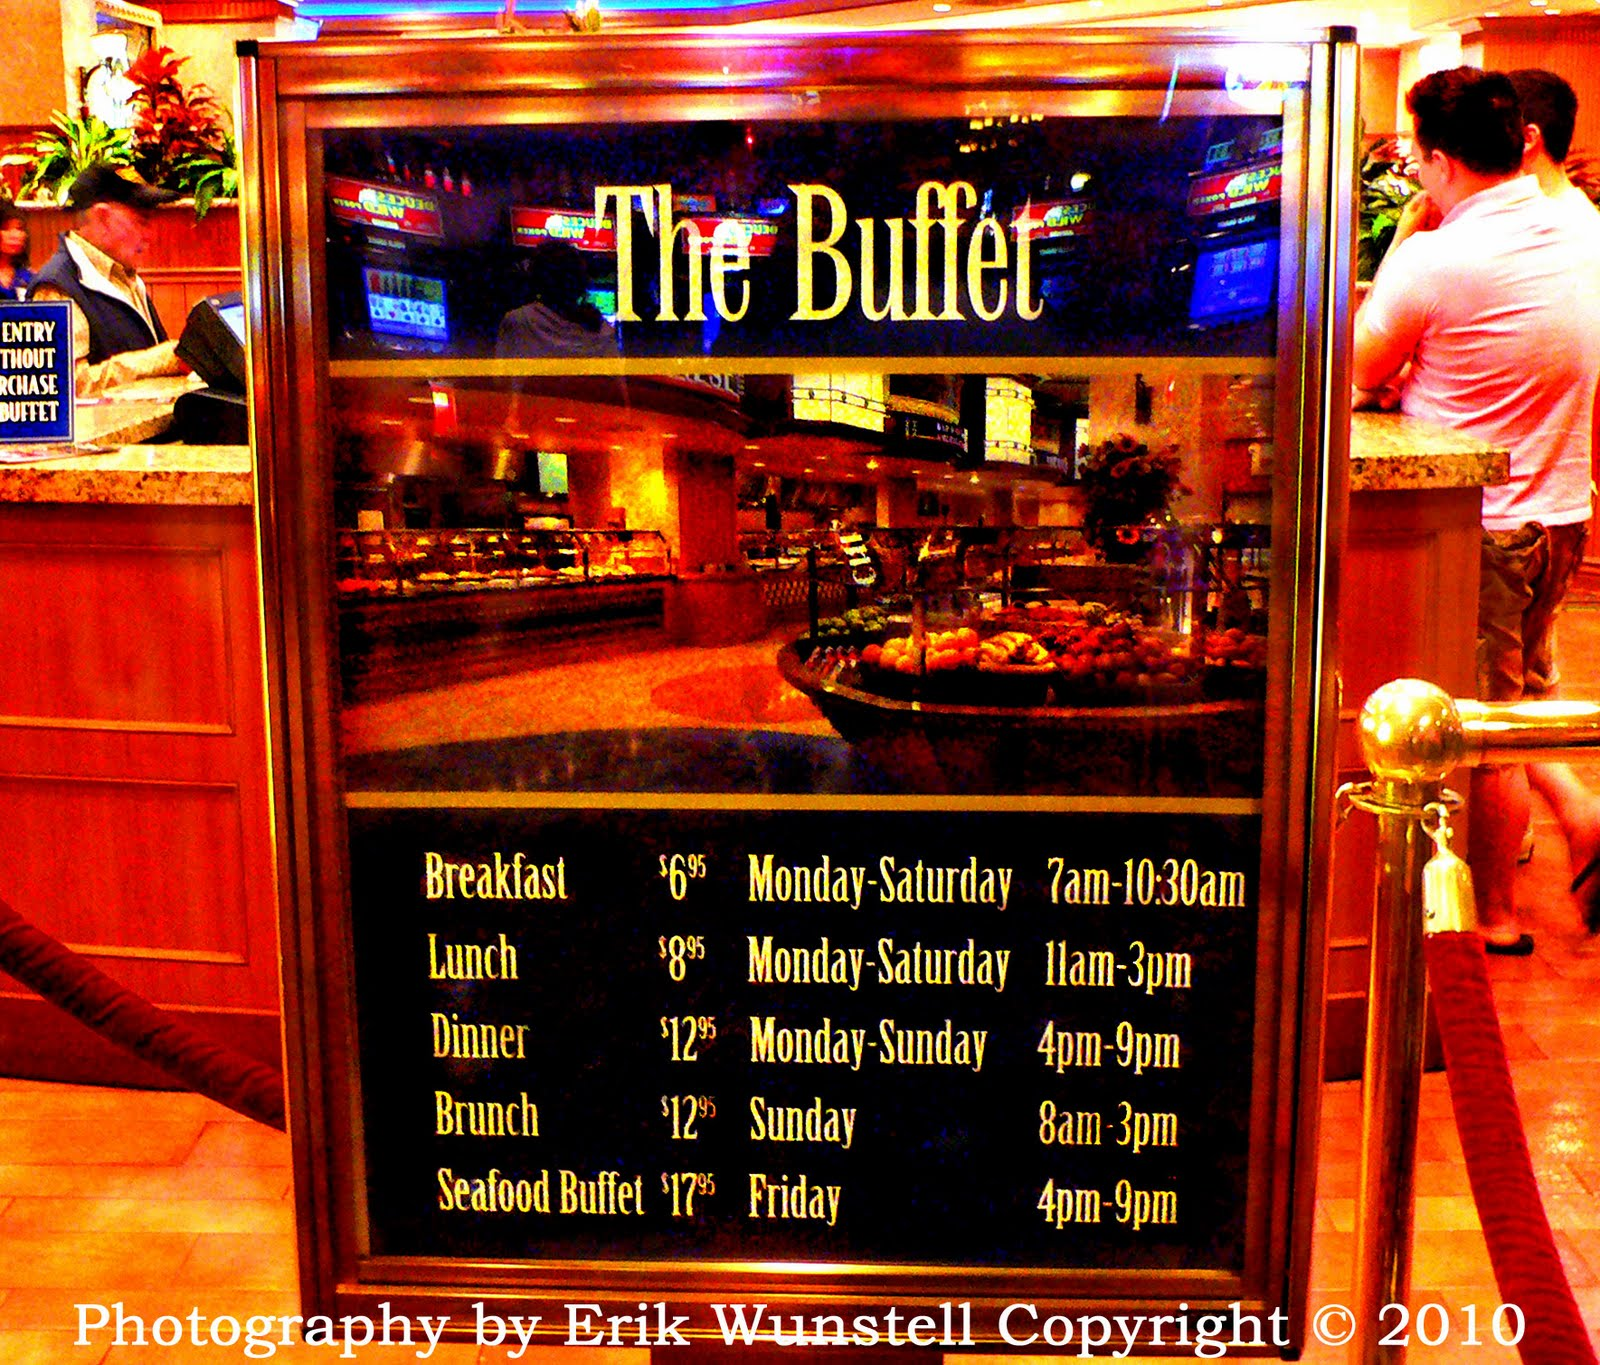 Las Vegas Breakfast Buffet Prices